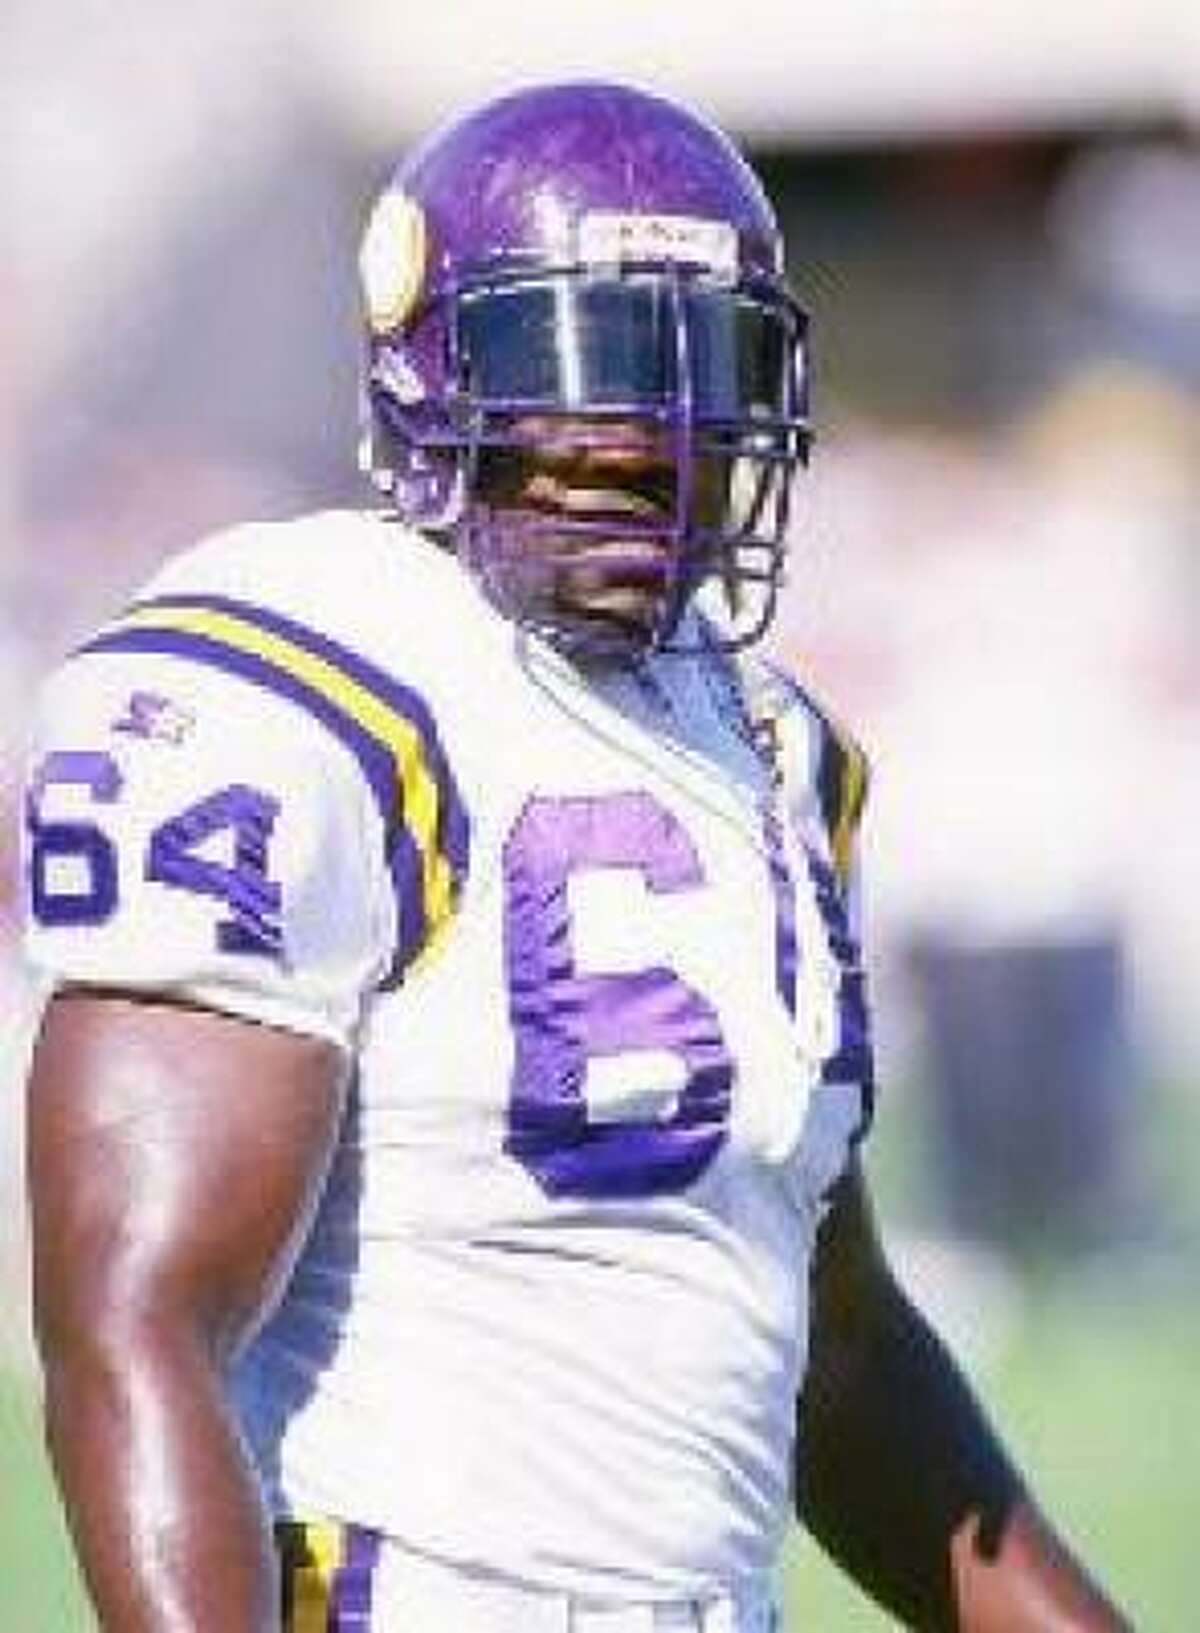 Randall McDaniel - Guard - 1988-1999 Minnesota Vikings, 2000-01 Tampa Bay Buccaneers. McDaniel was a steadying force on the Vikings offensive line.